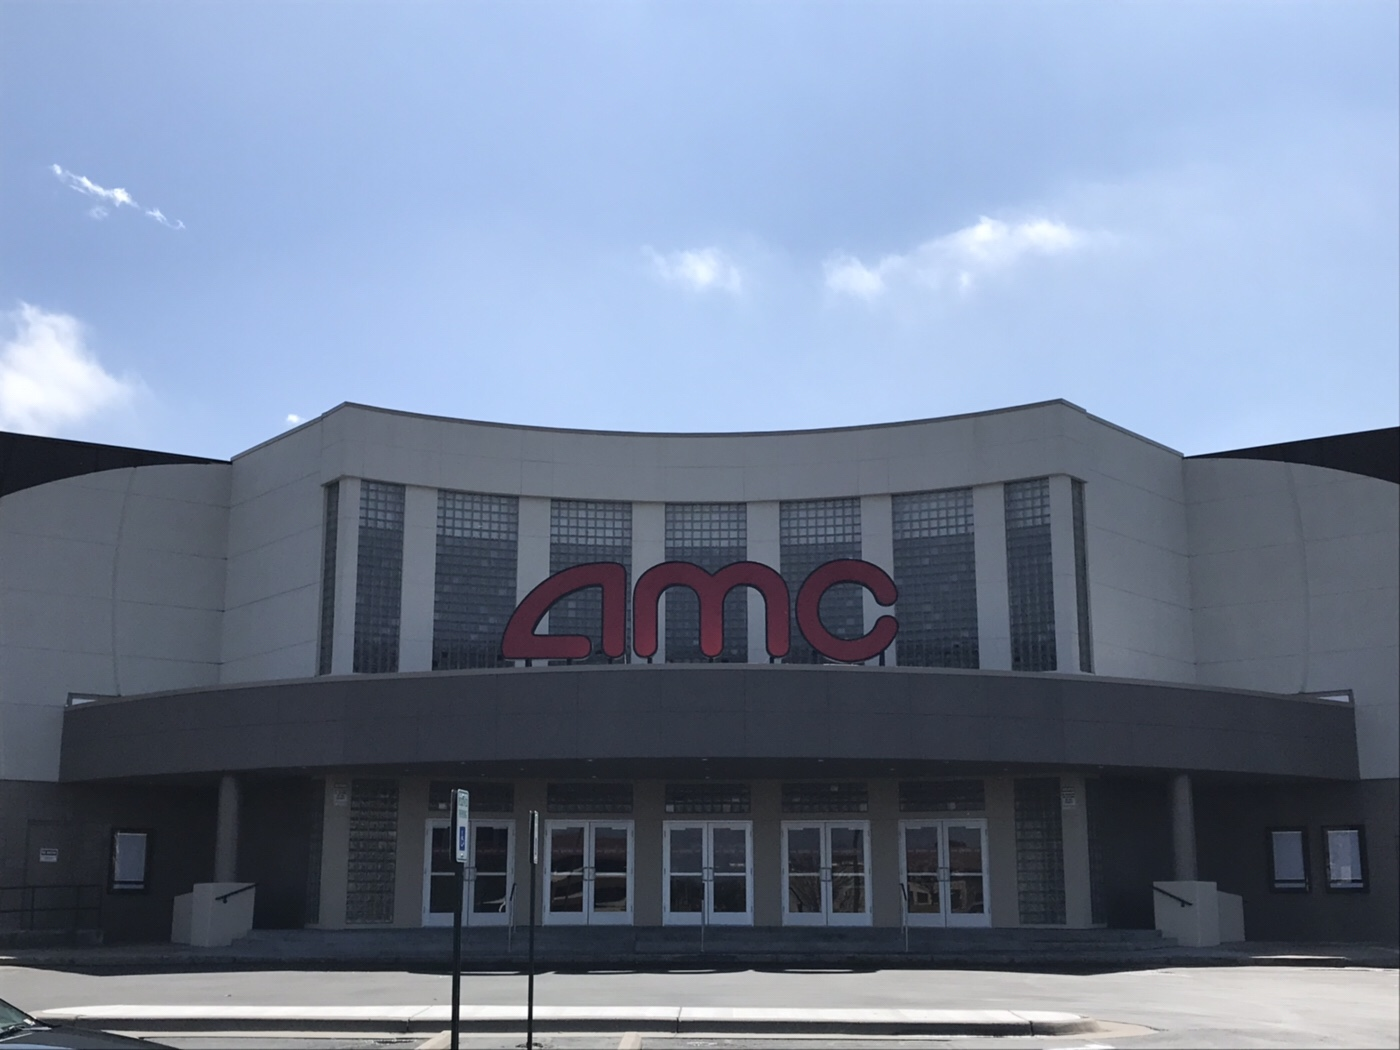 Amc Theatres Ticket Prices And Showtimes Announced Wichita By E B